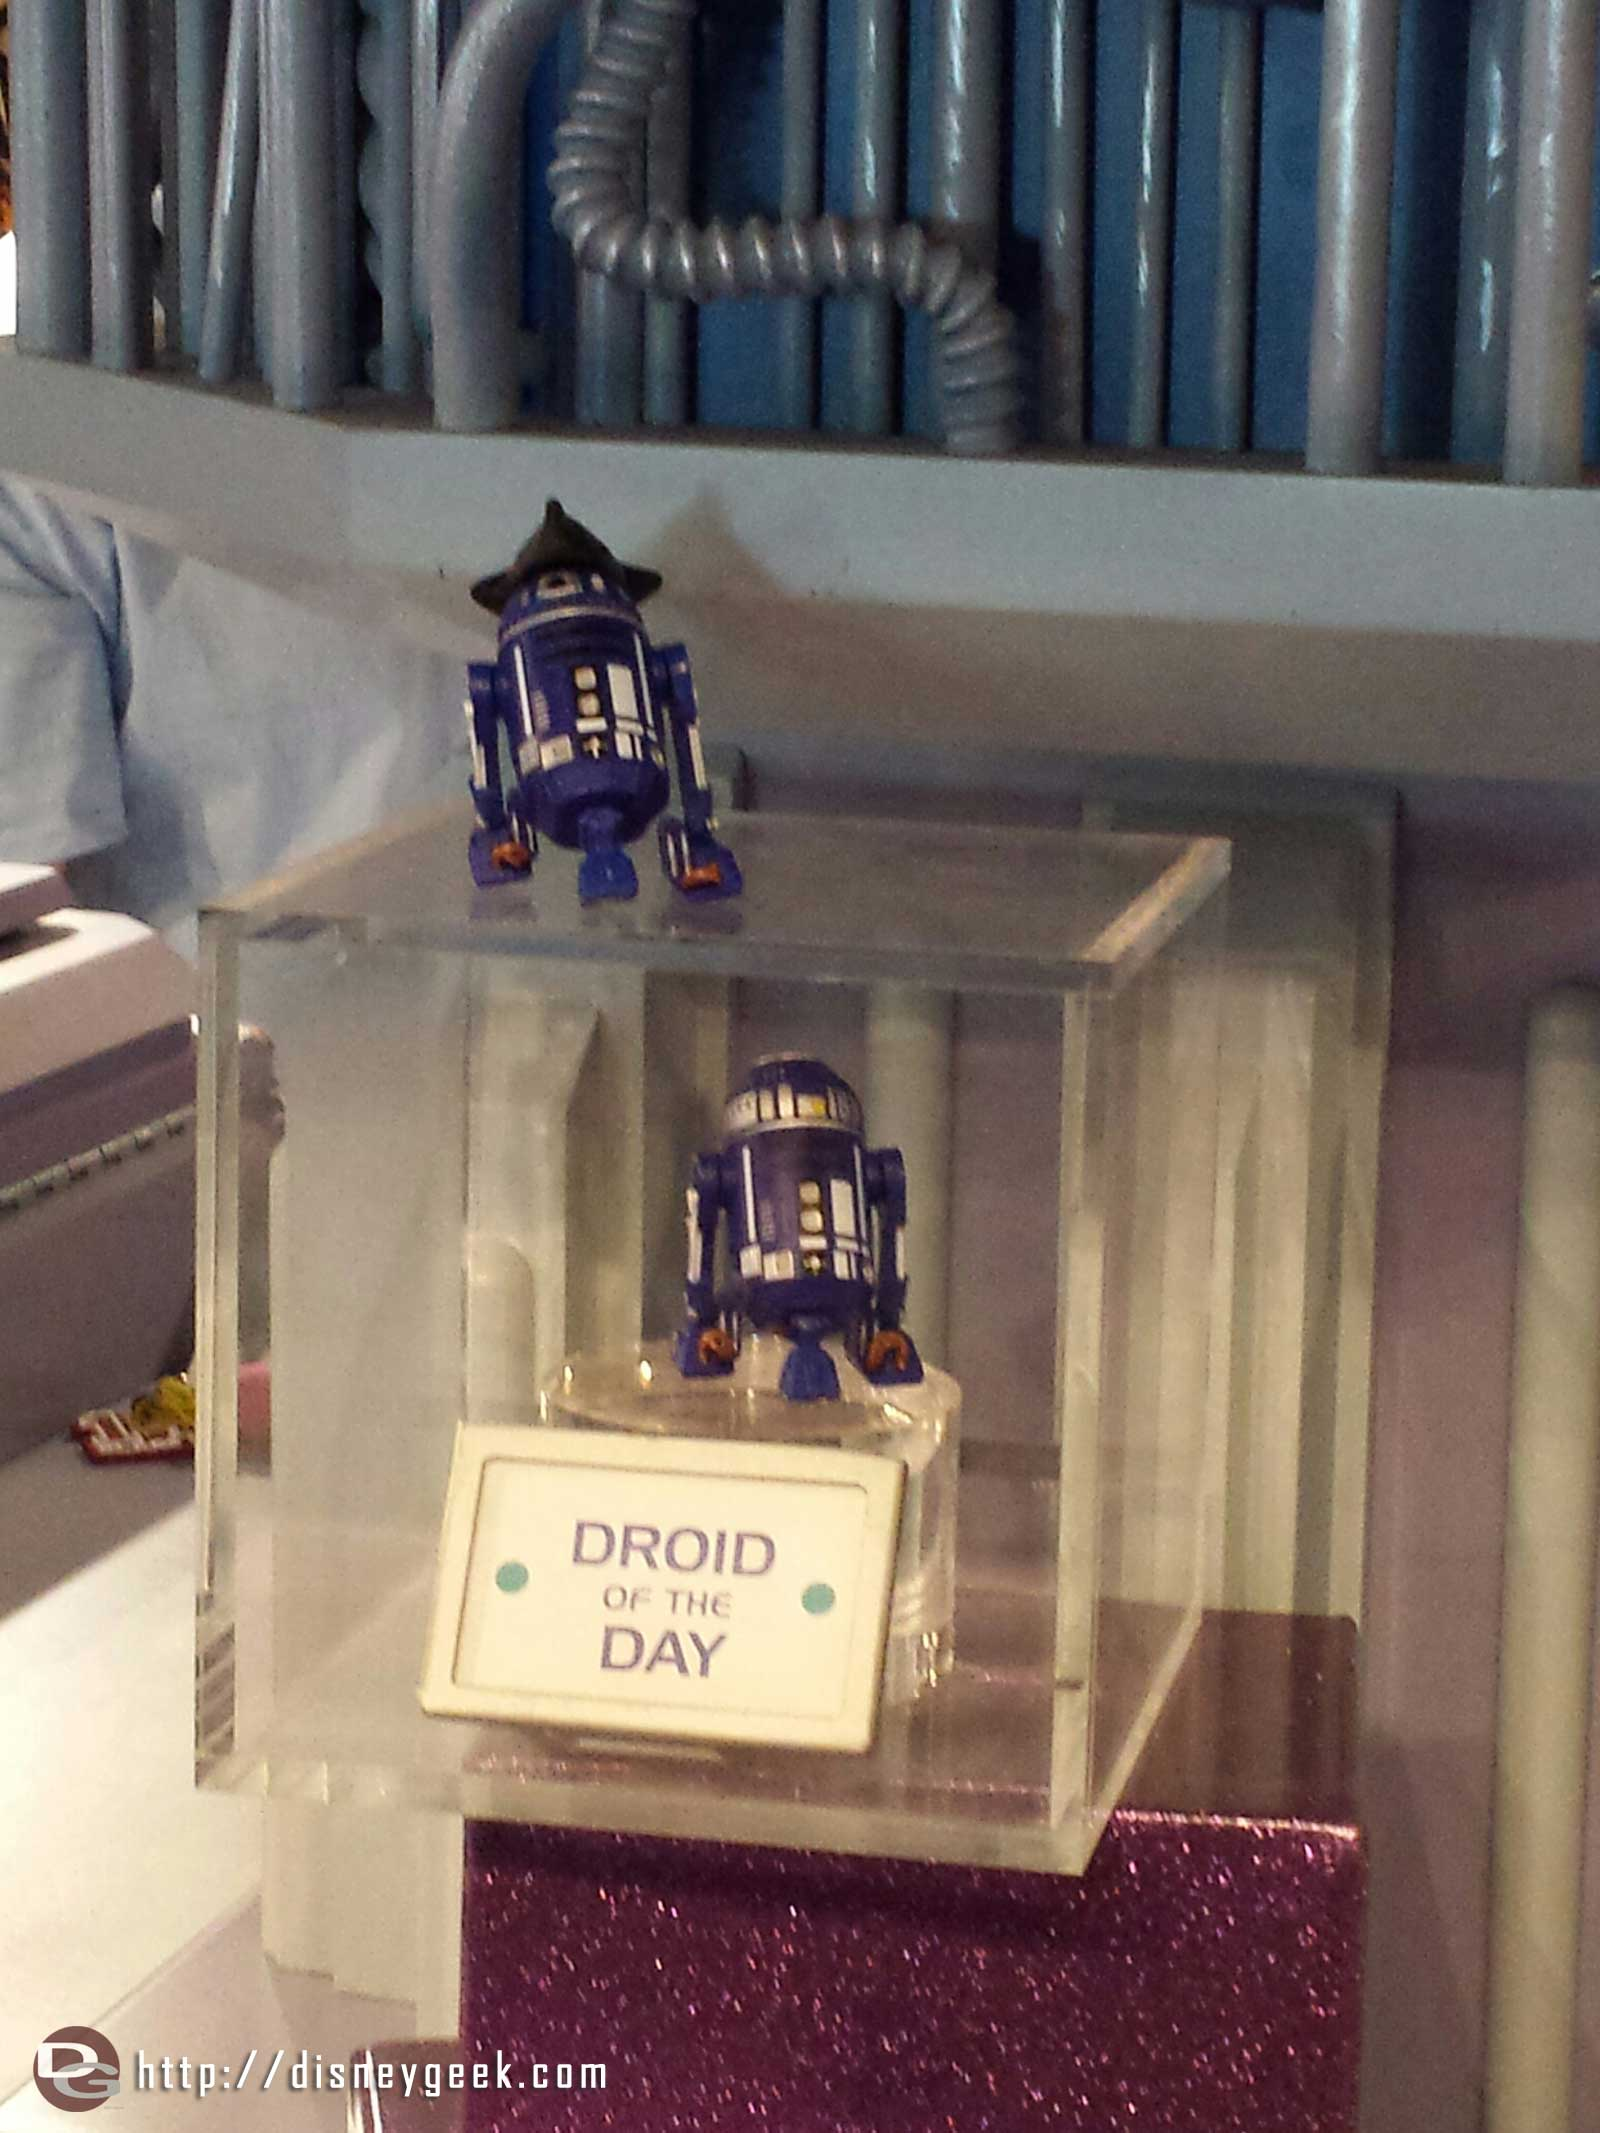 The droid of the day in the Star Trader